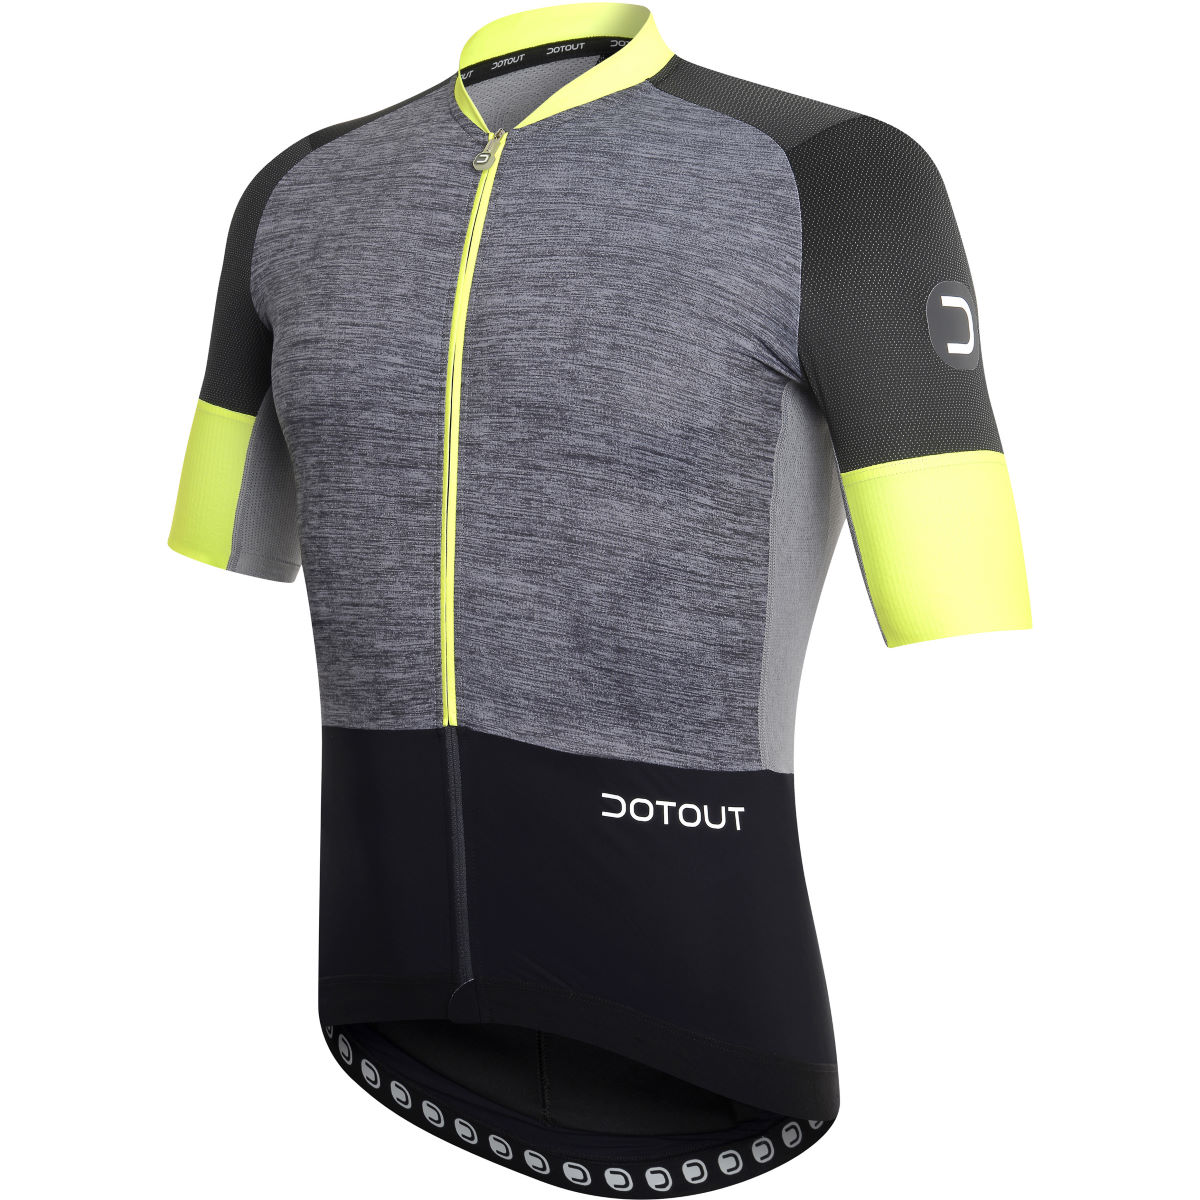 Maillot Dotout Power - XL Black - Yellow